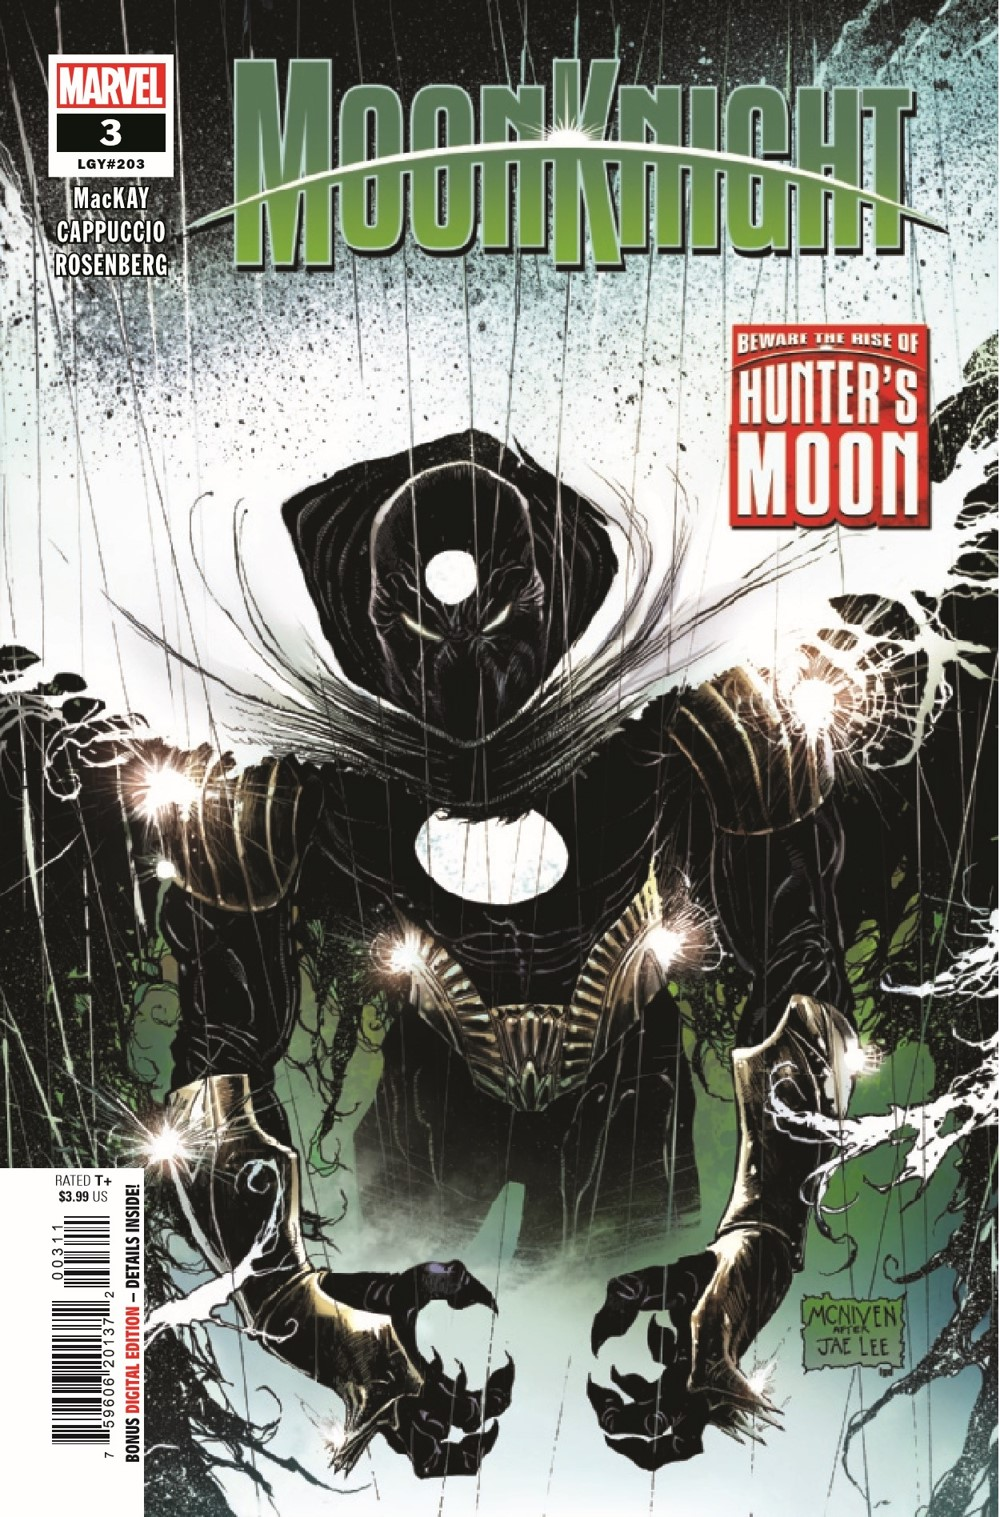 MOONKN2021003_Preview-1 ComicList Previews: MOON KNIGHT #3